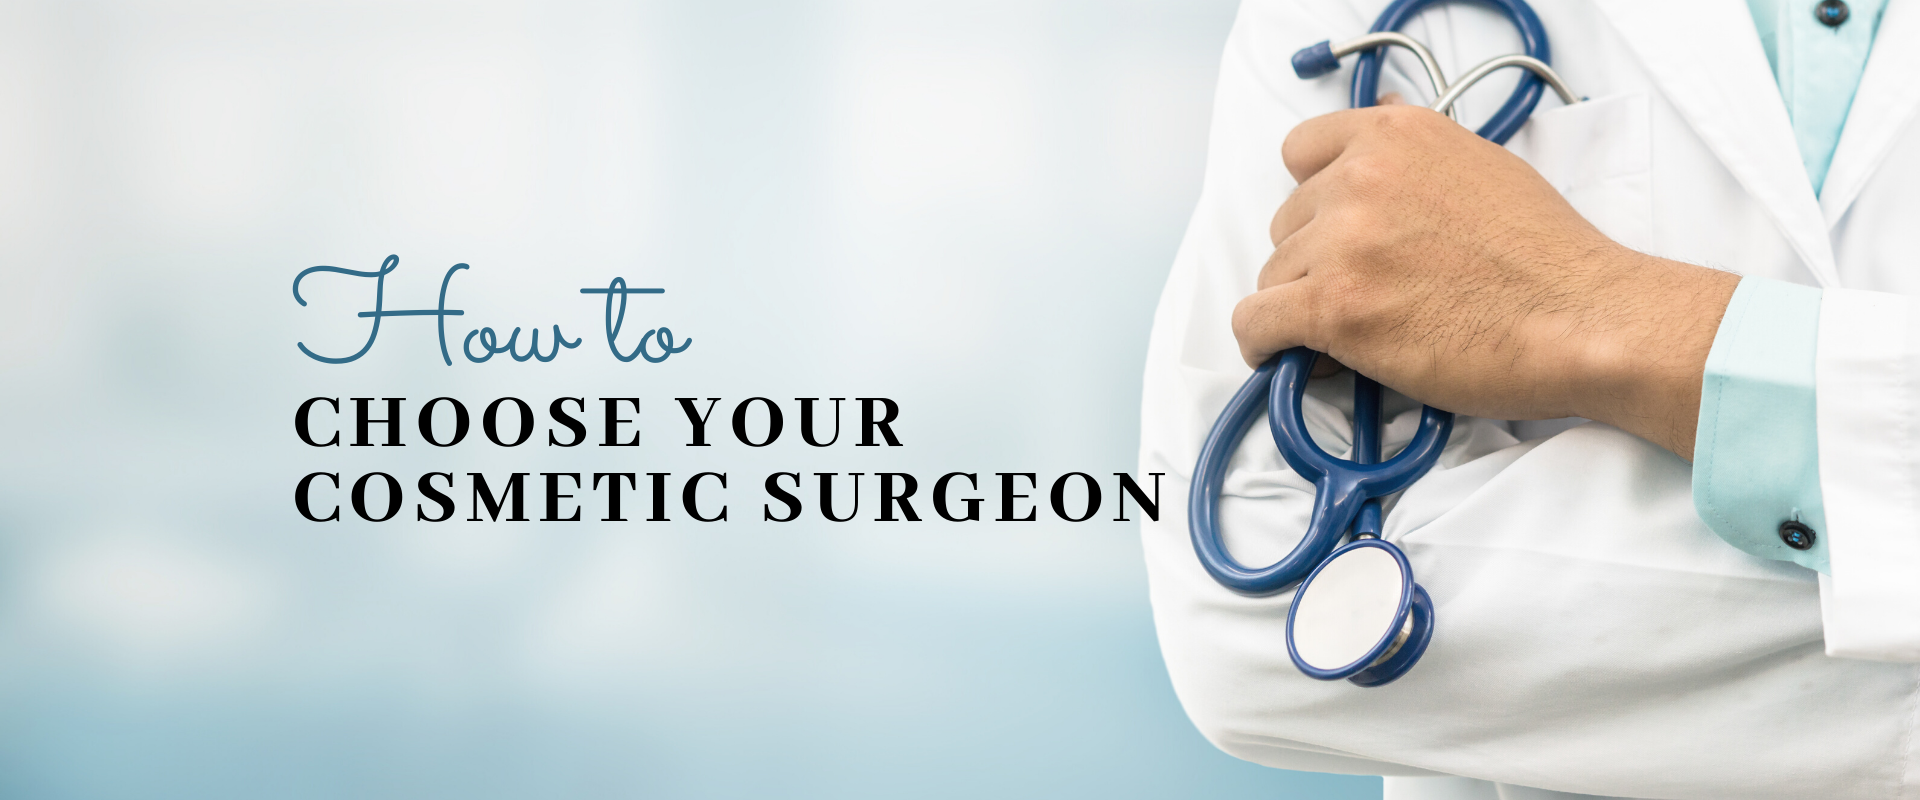 How to choose your cosmetic surgeon